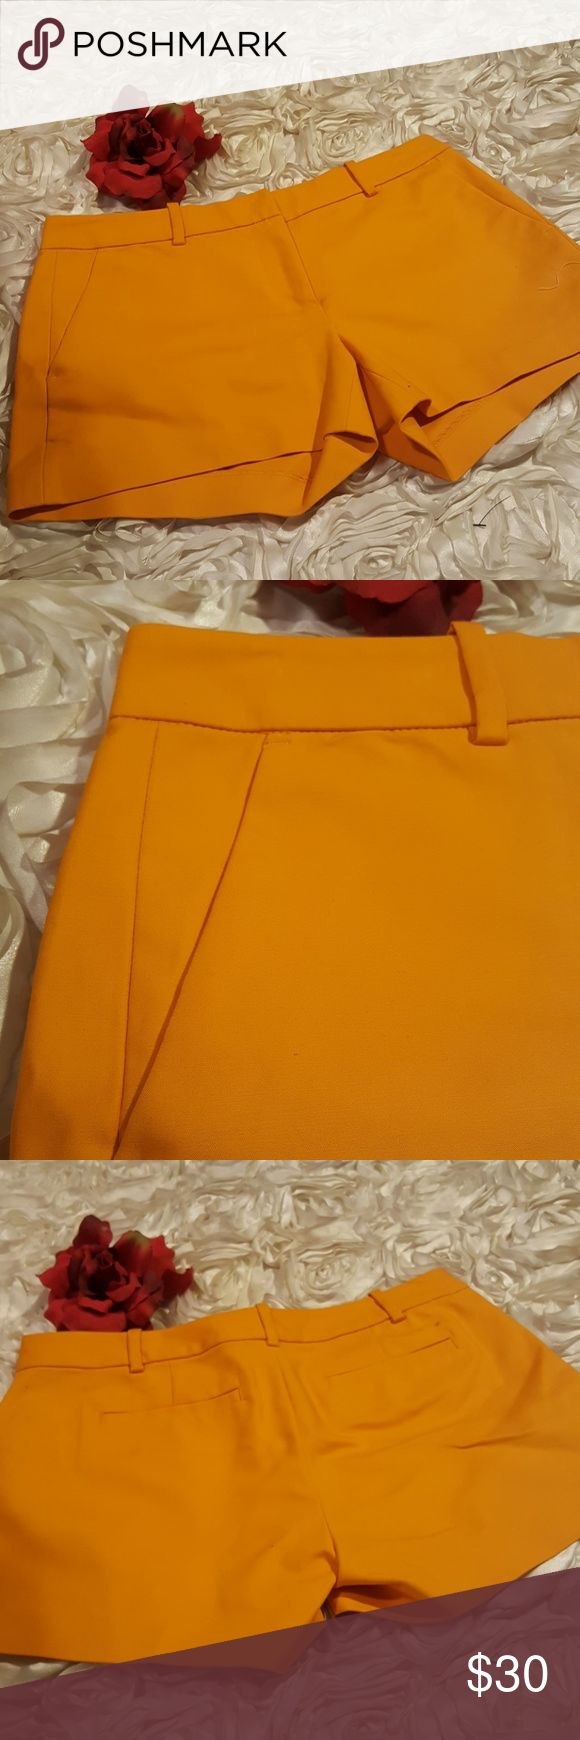 "Michael Kors Womens Orange Shorts This is a pair of womens Michael Kors shorts. Material is 97% cotton, 2% spandex.  Zip front closure.  Please view pictures for more details.  Size 2 Waist 15"" Hip 18' Length 10"" Front rise. 8"" Back rise 13"" Inseam 3"" Side seam. 10 1/2"" Michael Kors Shorts"